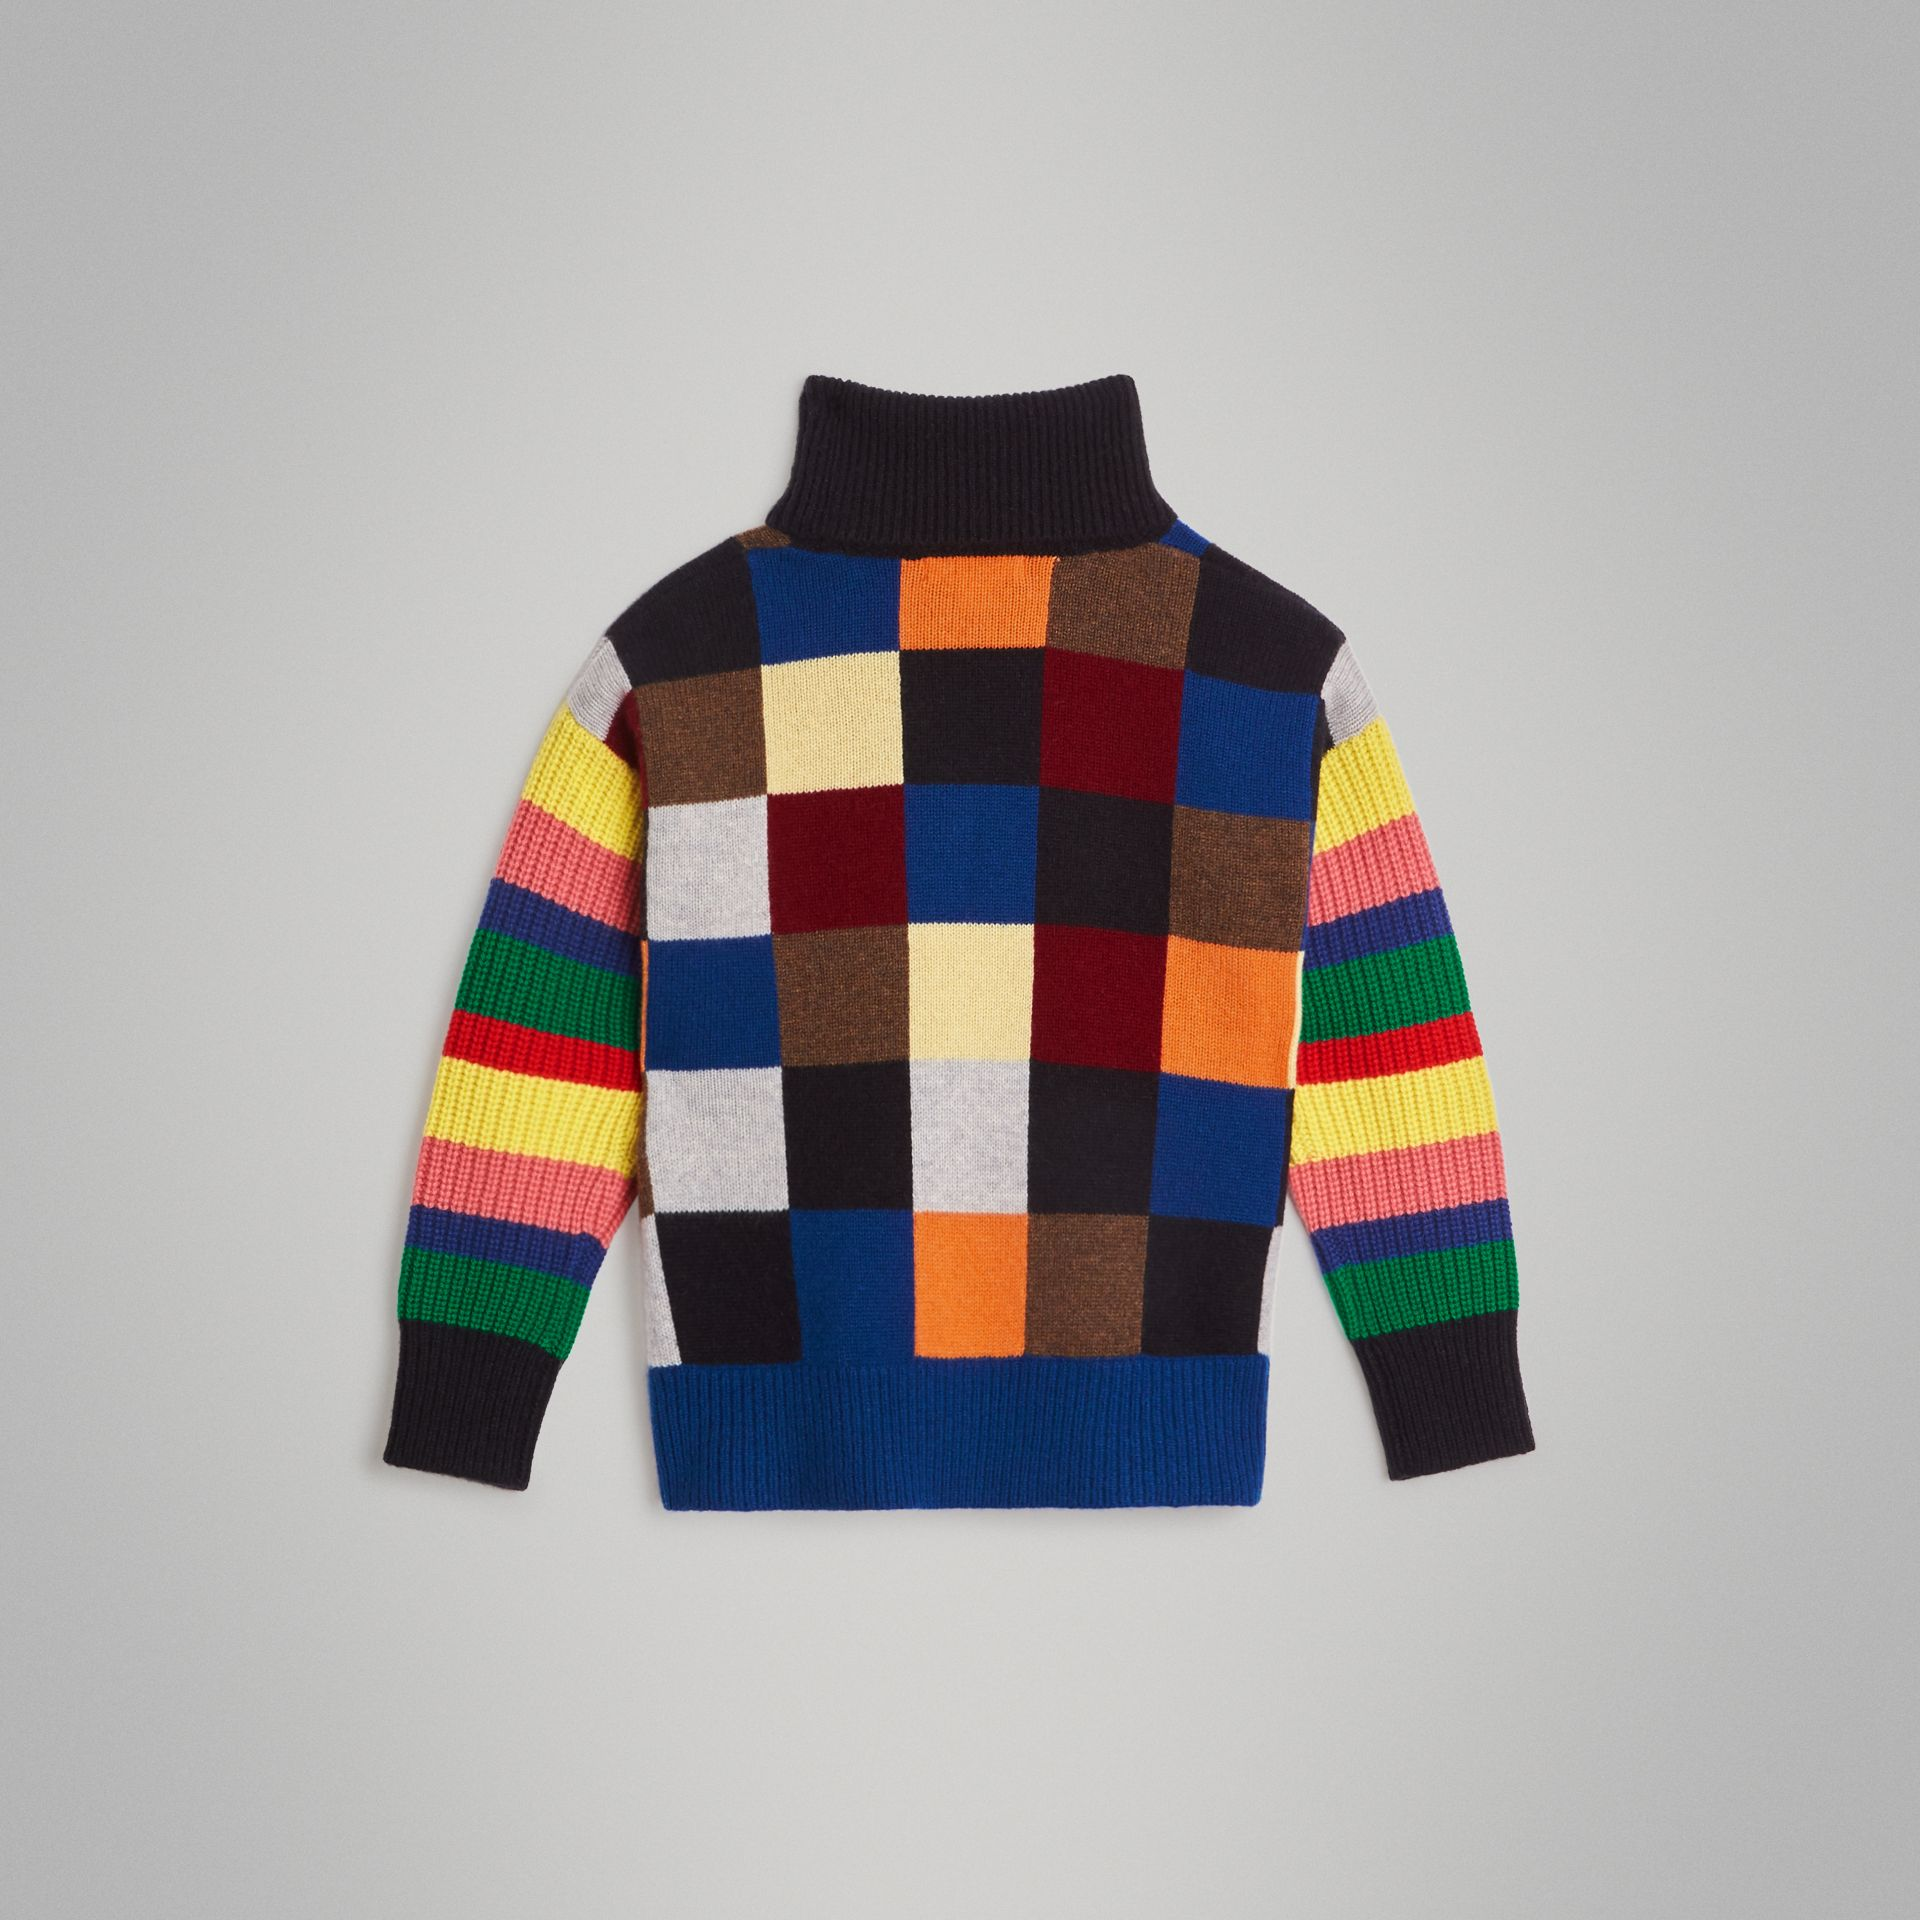 Patchwork Cashmere Roll-neck Sweater in Multicolour | Burberry Singapore - gallery image 3